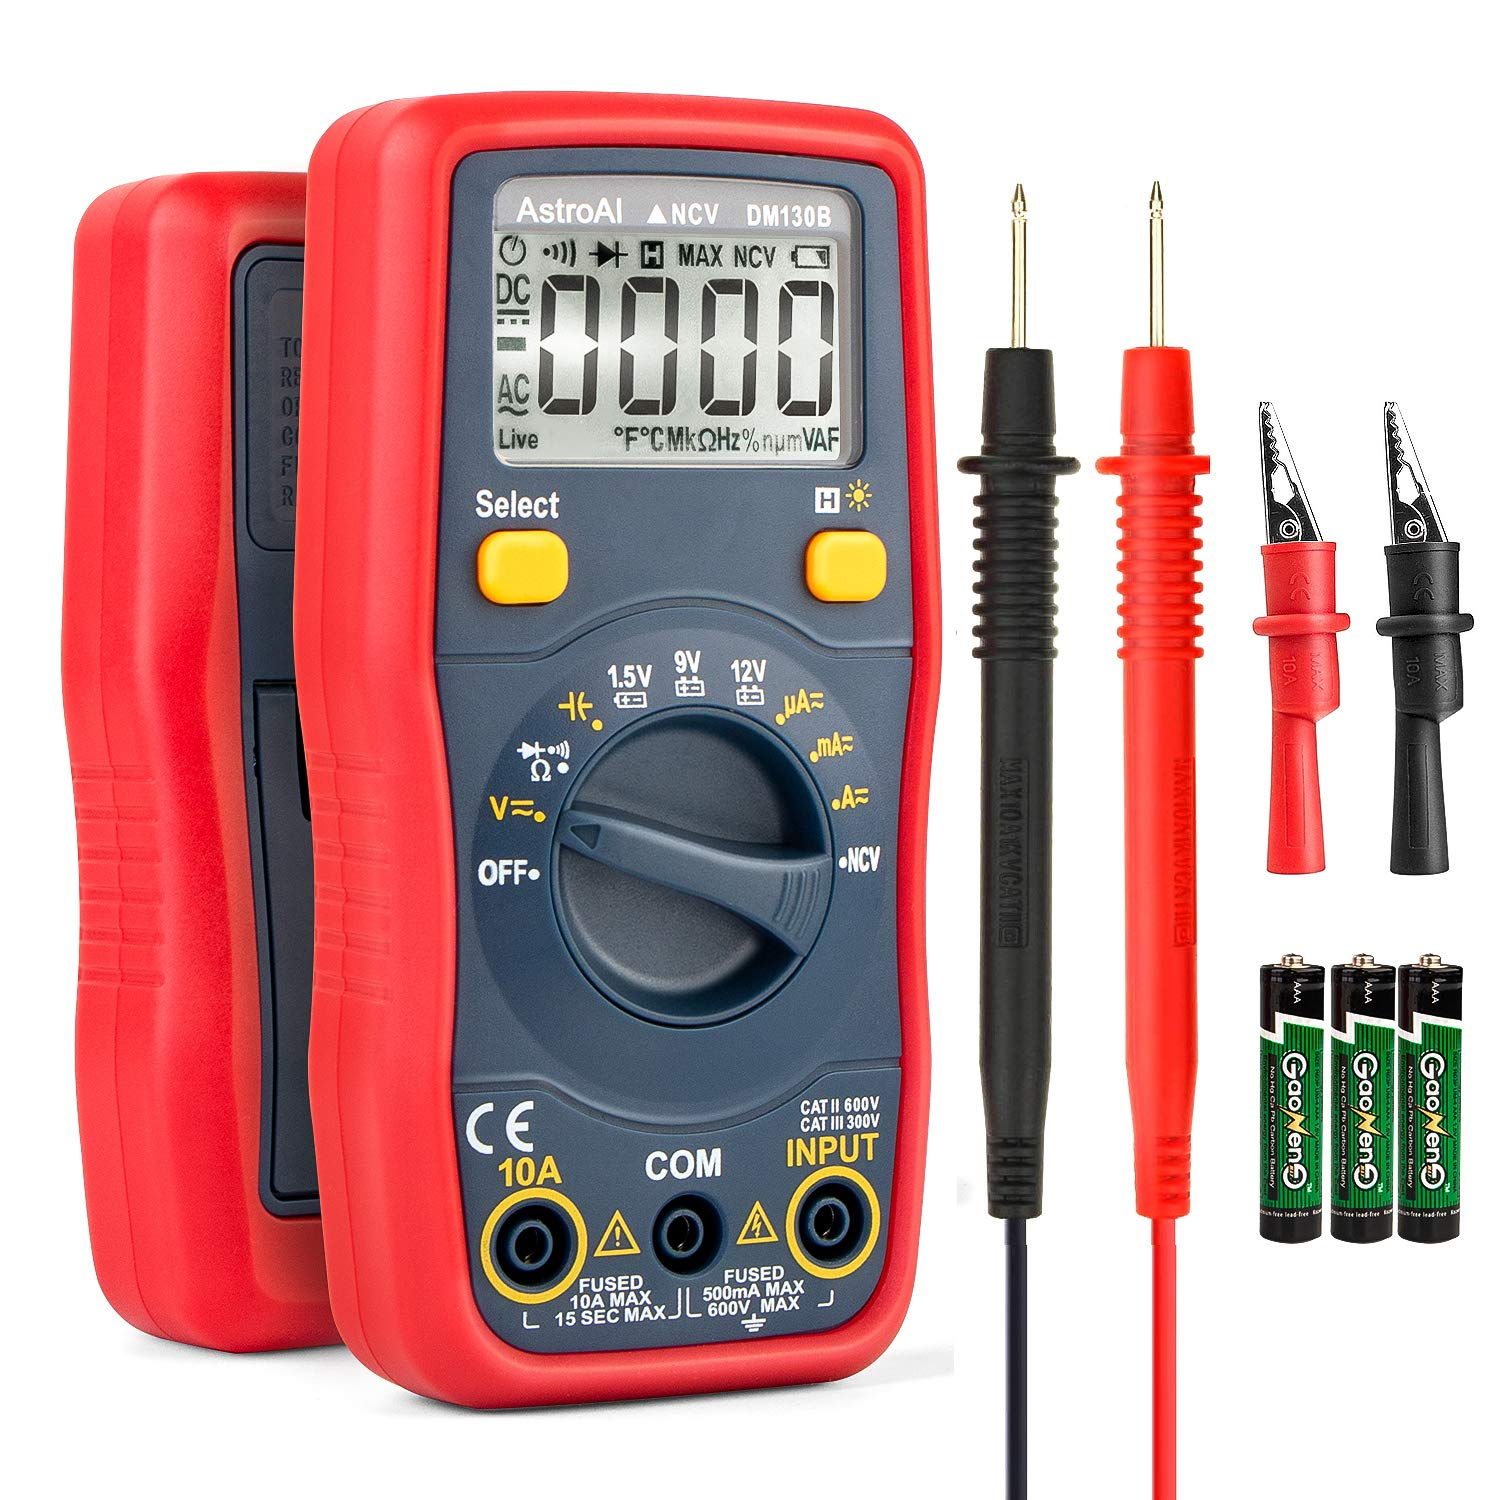 AstroAI Digital Multimeter Battery Voltage Tester 1.5v/9v/12v Auto-Ranging 4000 Counts TRMS DMM/Ohmmeter/Voltmeter with Non-Contact Voltage Function